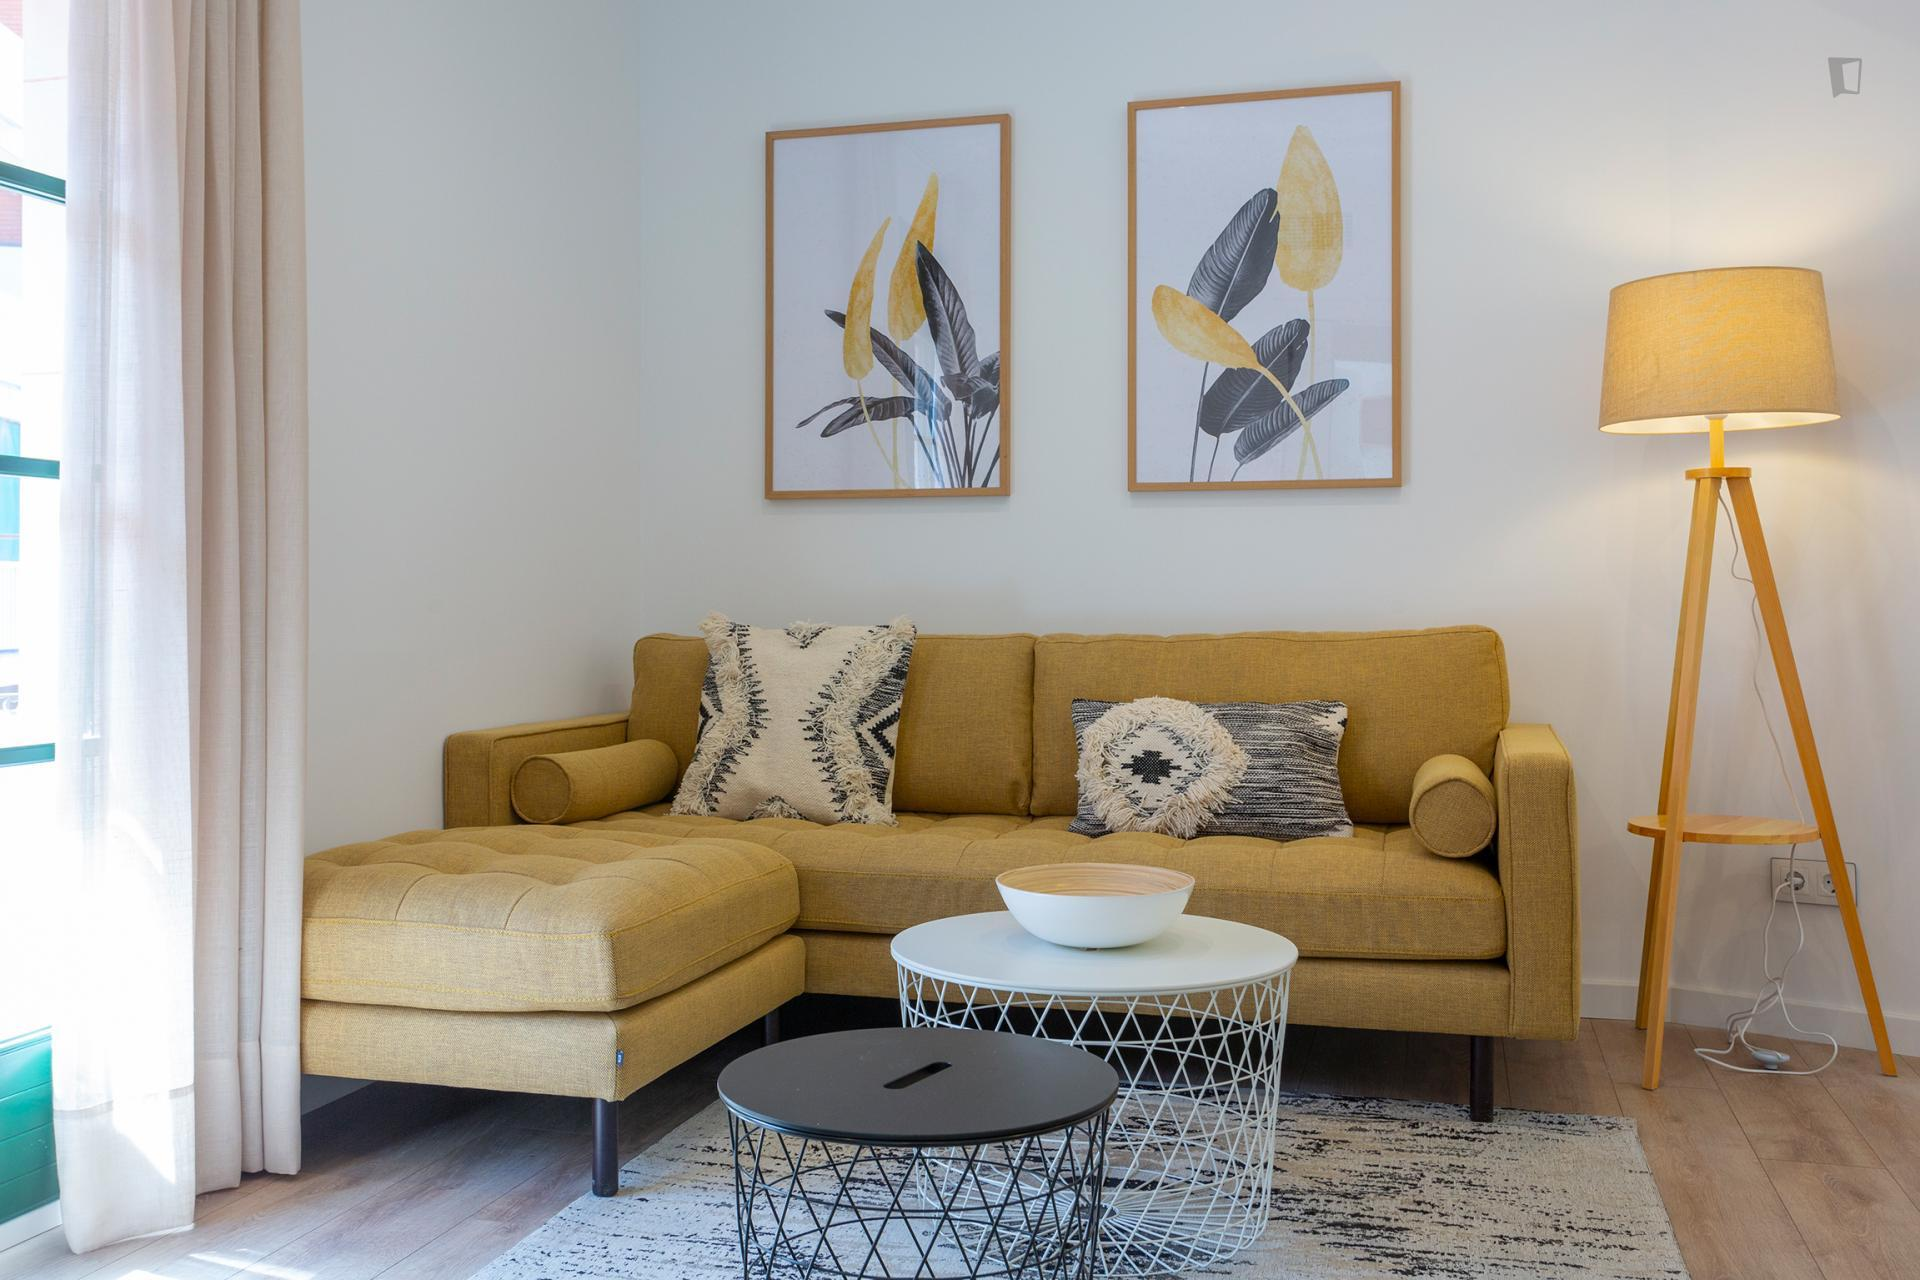 Portugalete 3 - Furnished flat for expats in Barcelona